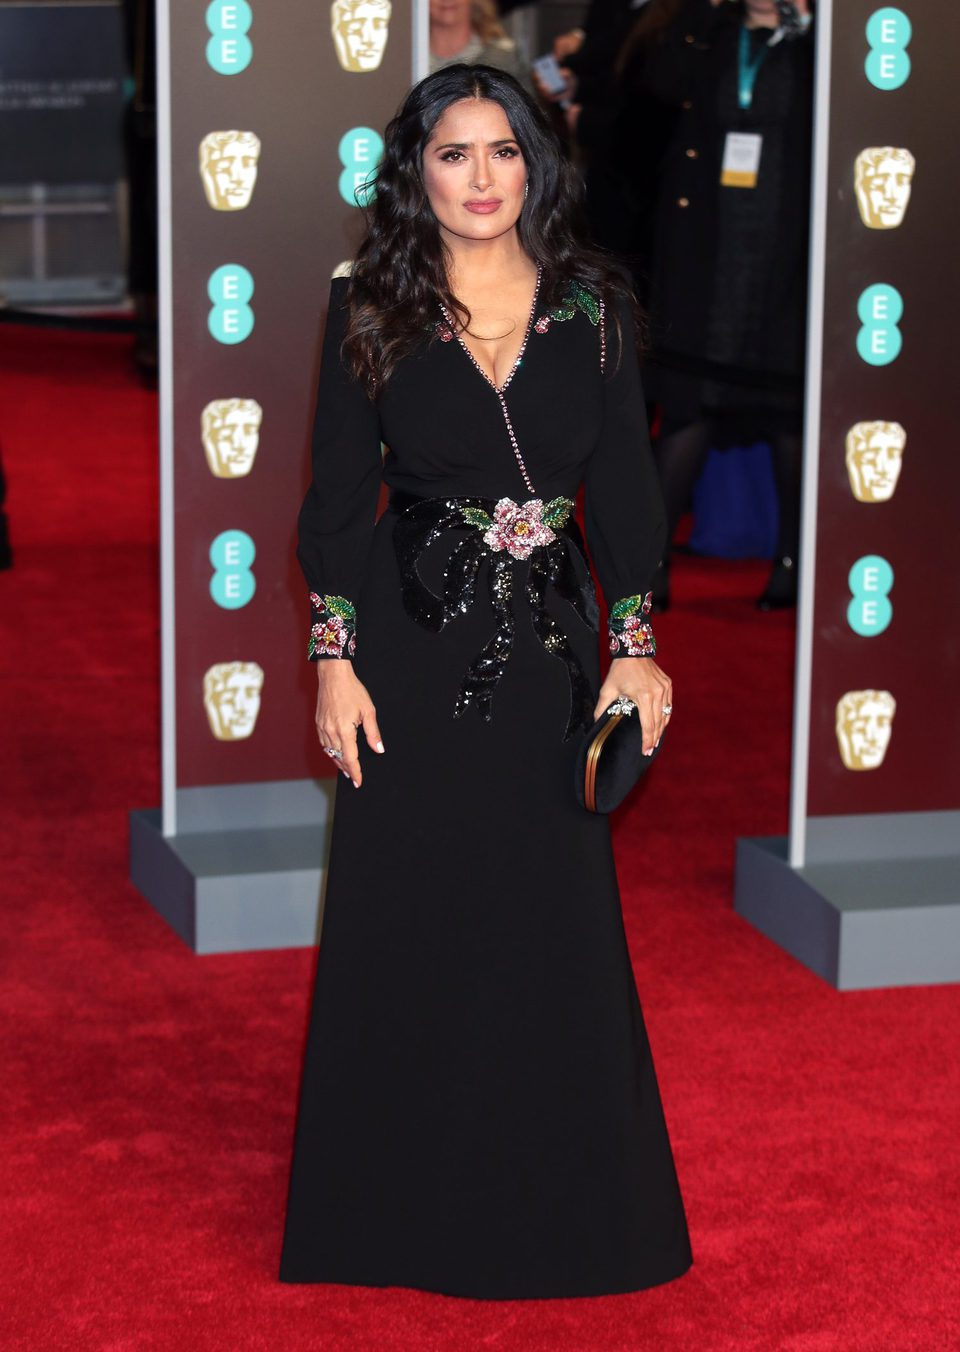 Salma Hayek at the BAFTAs 2018 red carpet, Full Size